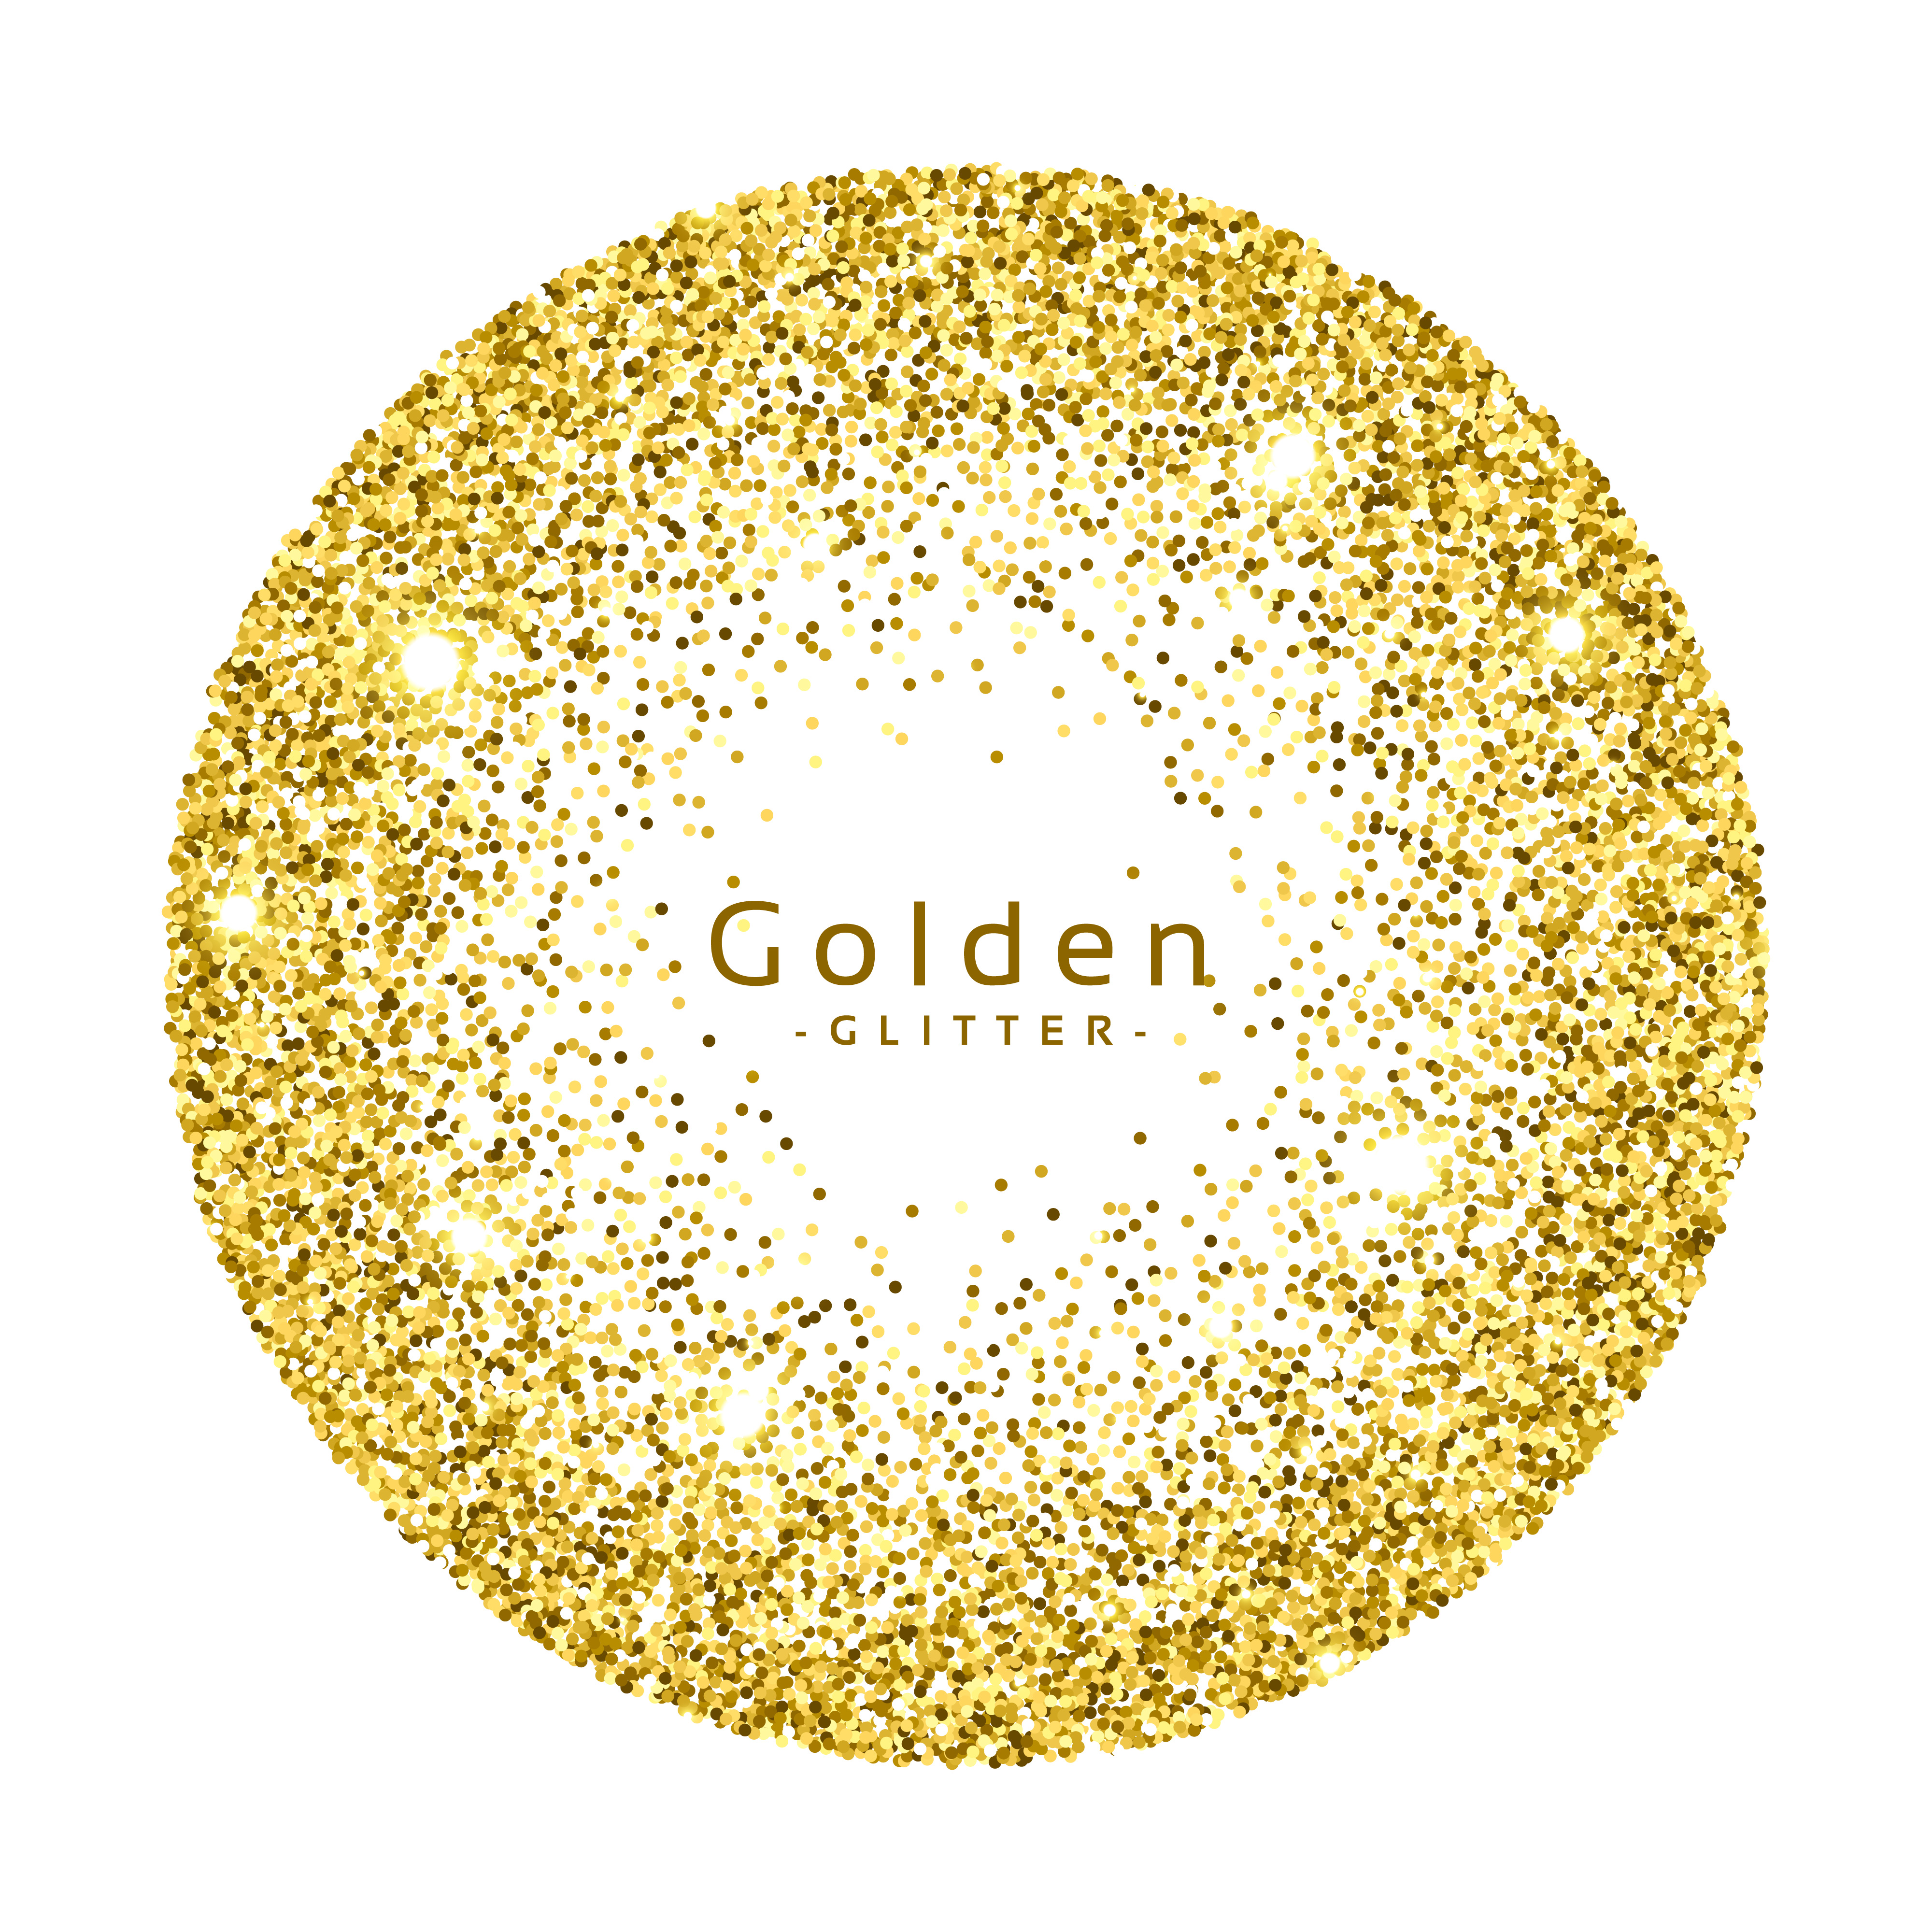 Glitter Gold: Gold Glitter Circle Frame Vector Background